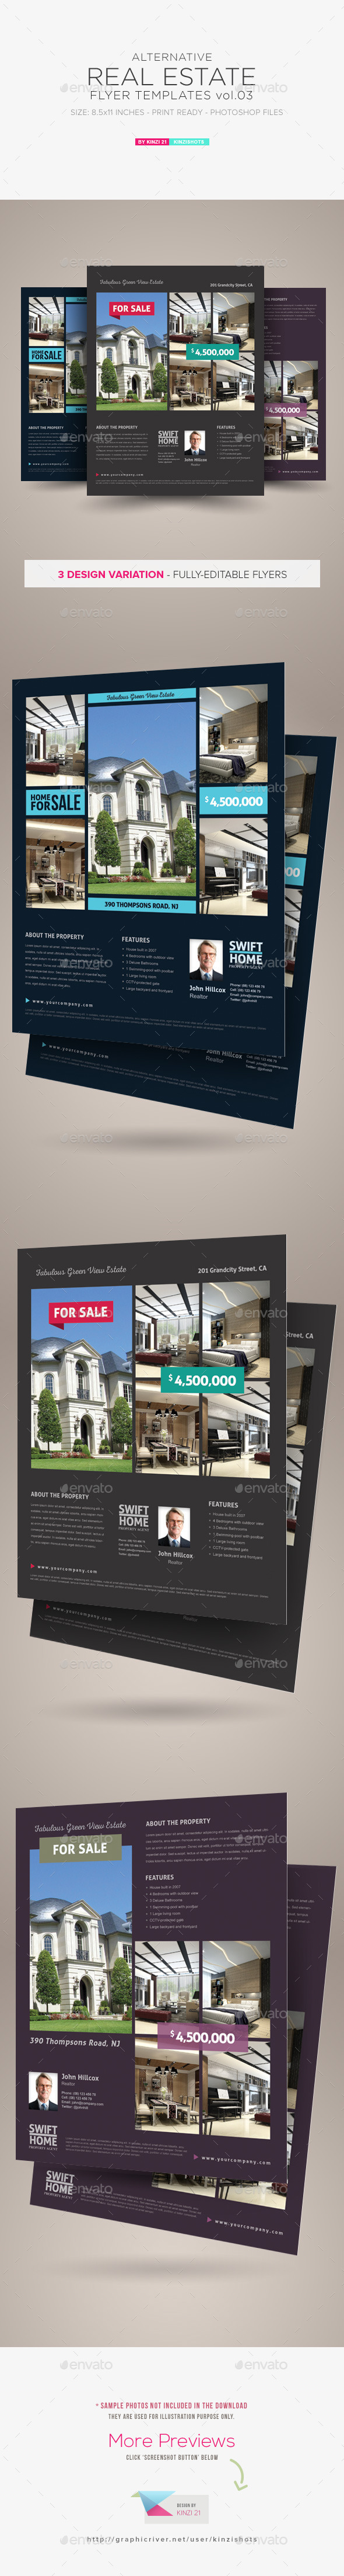 Real Estate Flyer Templates vol.03 - Corporate Flyers